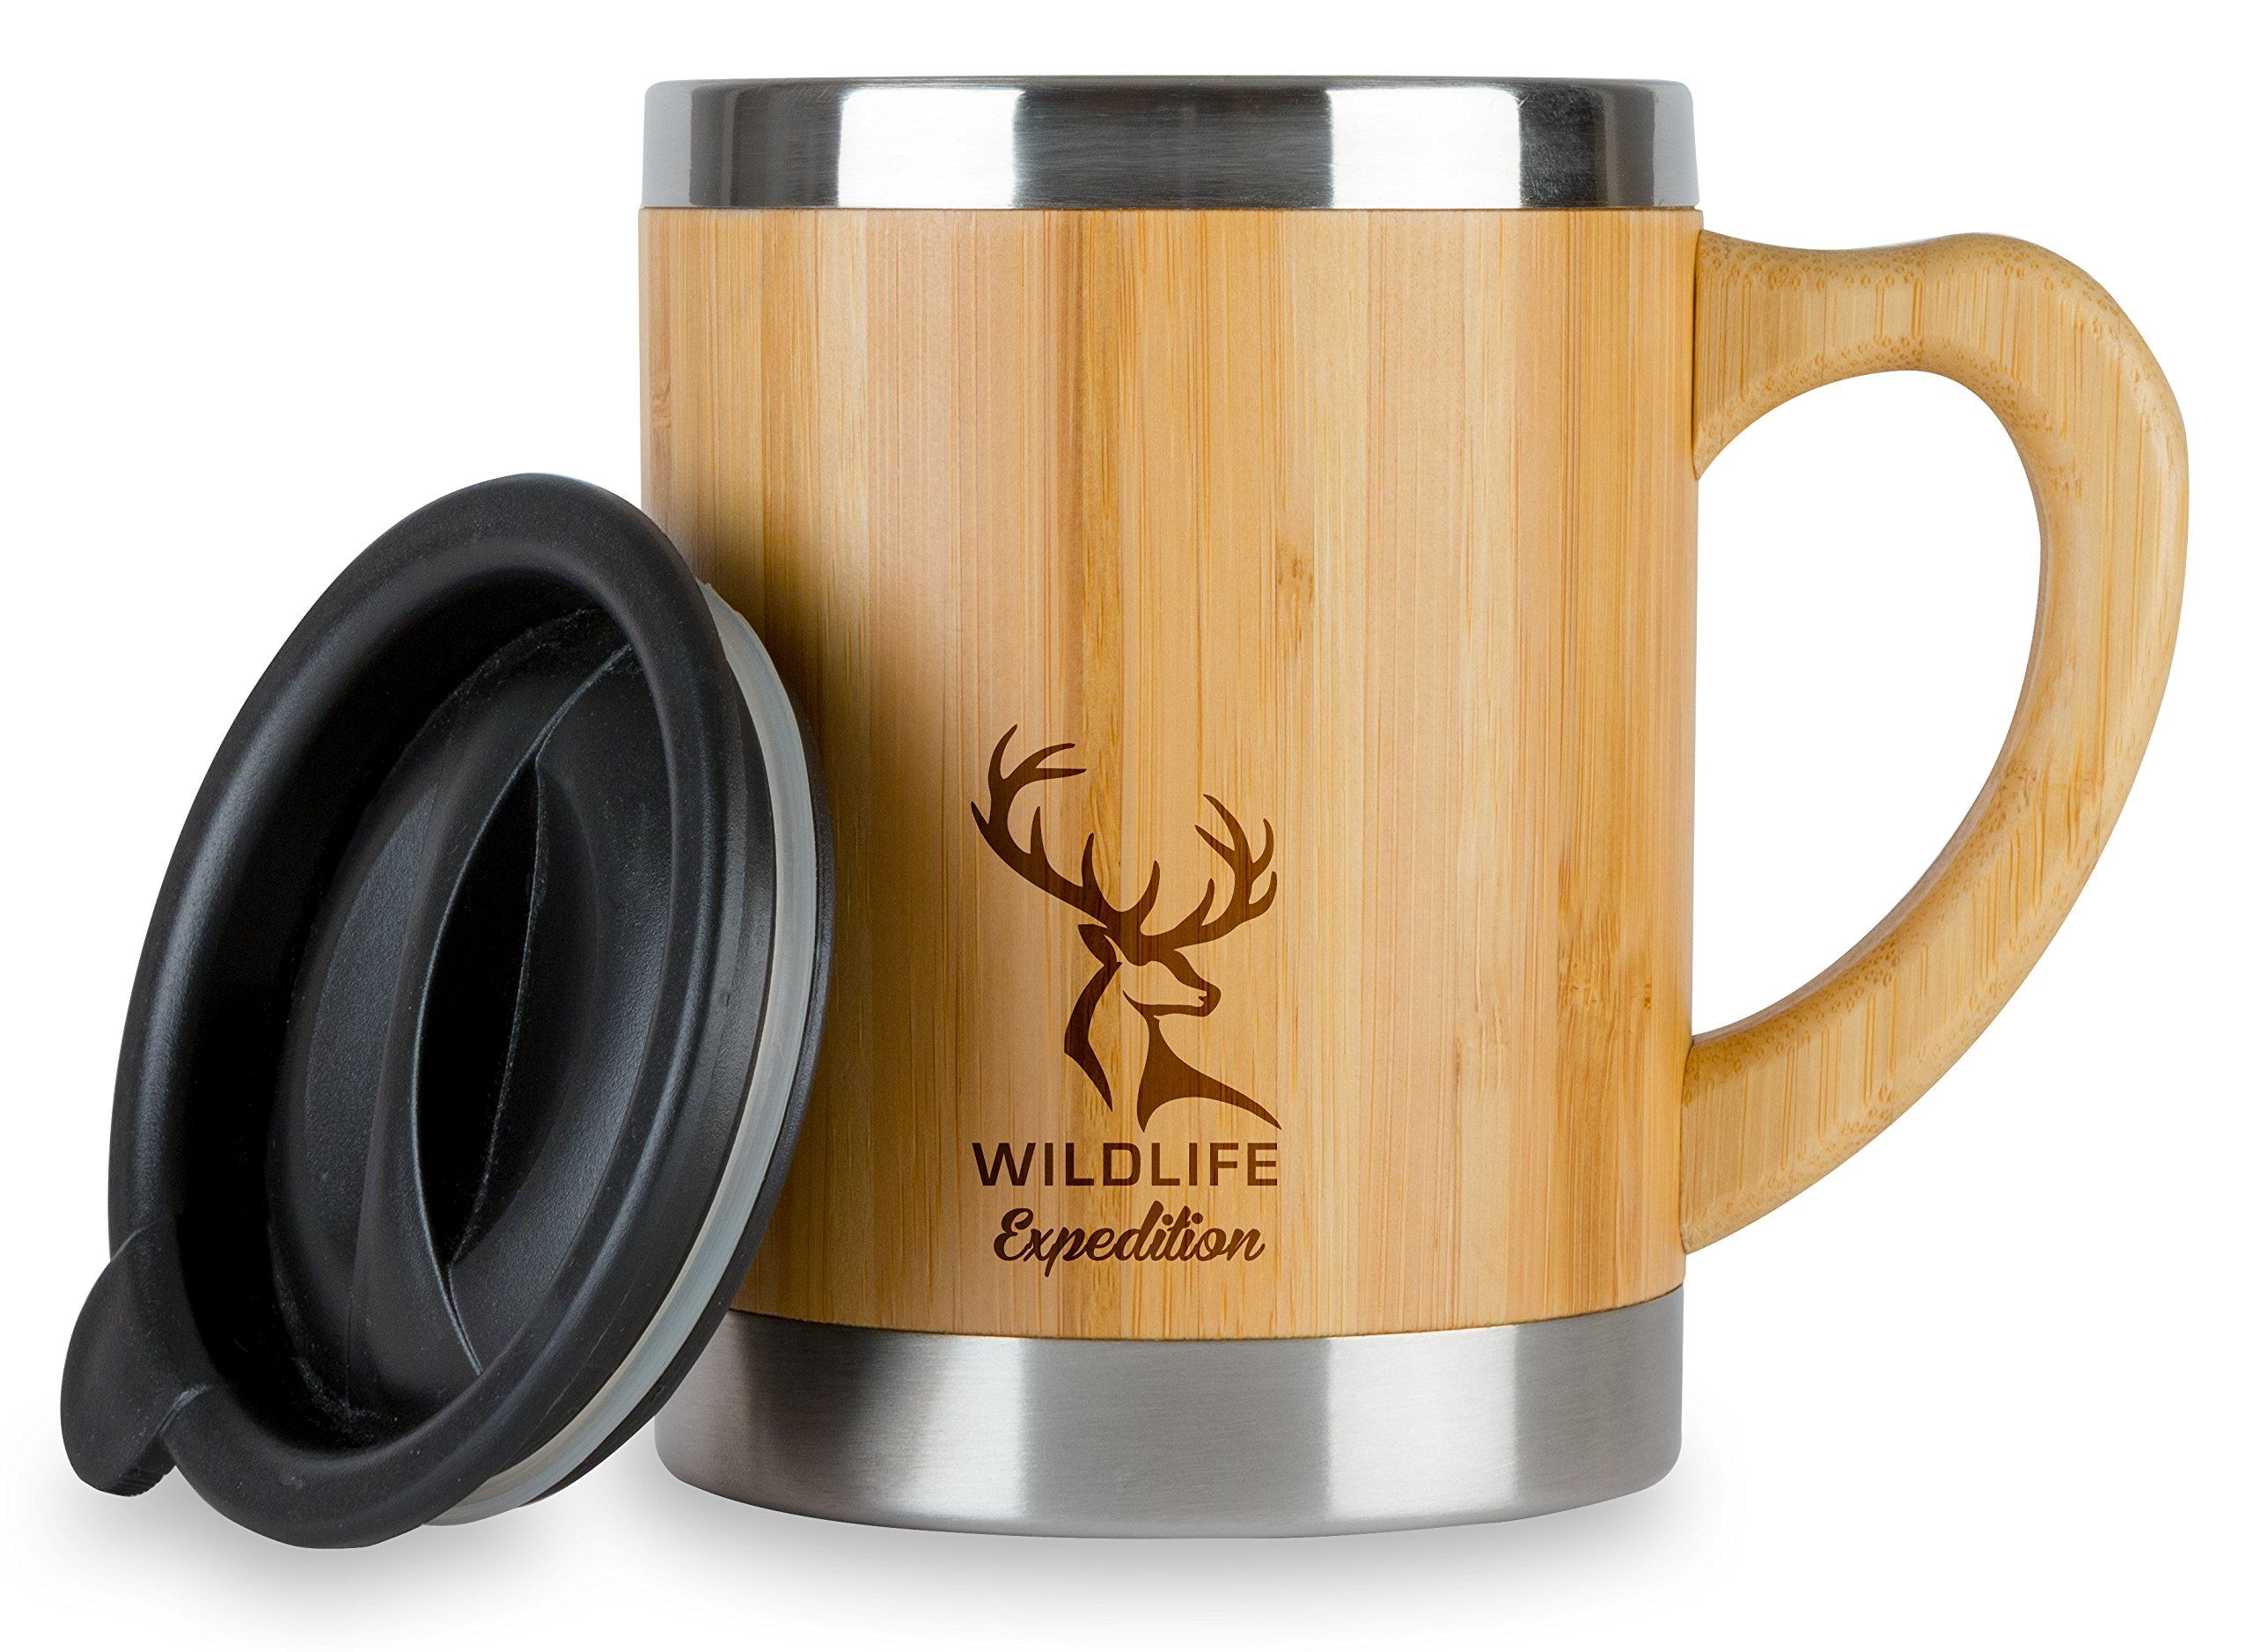 Wildlife Expedition Insulated 13oz Coffee Mug - Stainless Steel & Bamboo Cup with Handle & Lid - Non-Spill On the Go - Keep Your Tea Hot Longer - Unique Gift for Men & Women